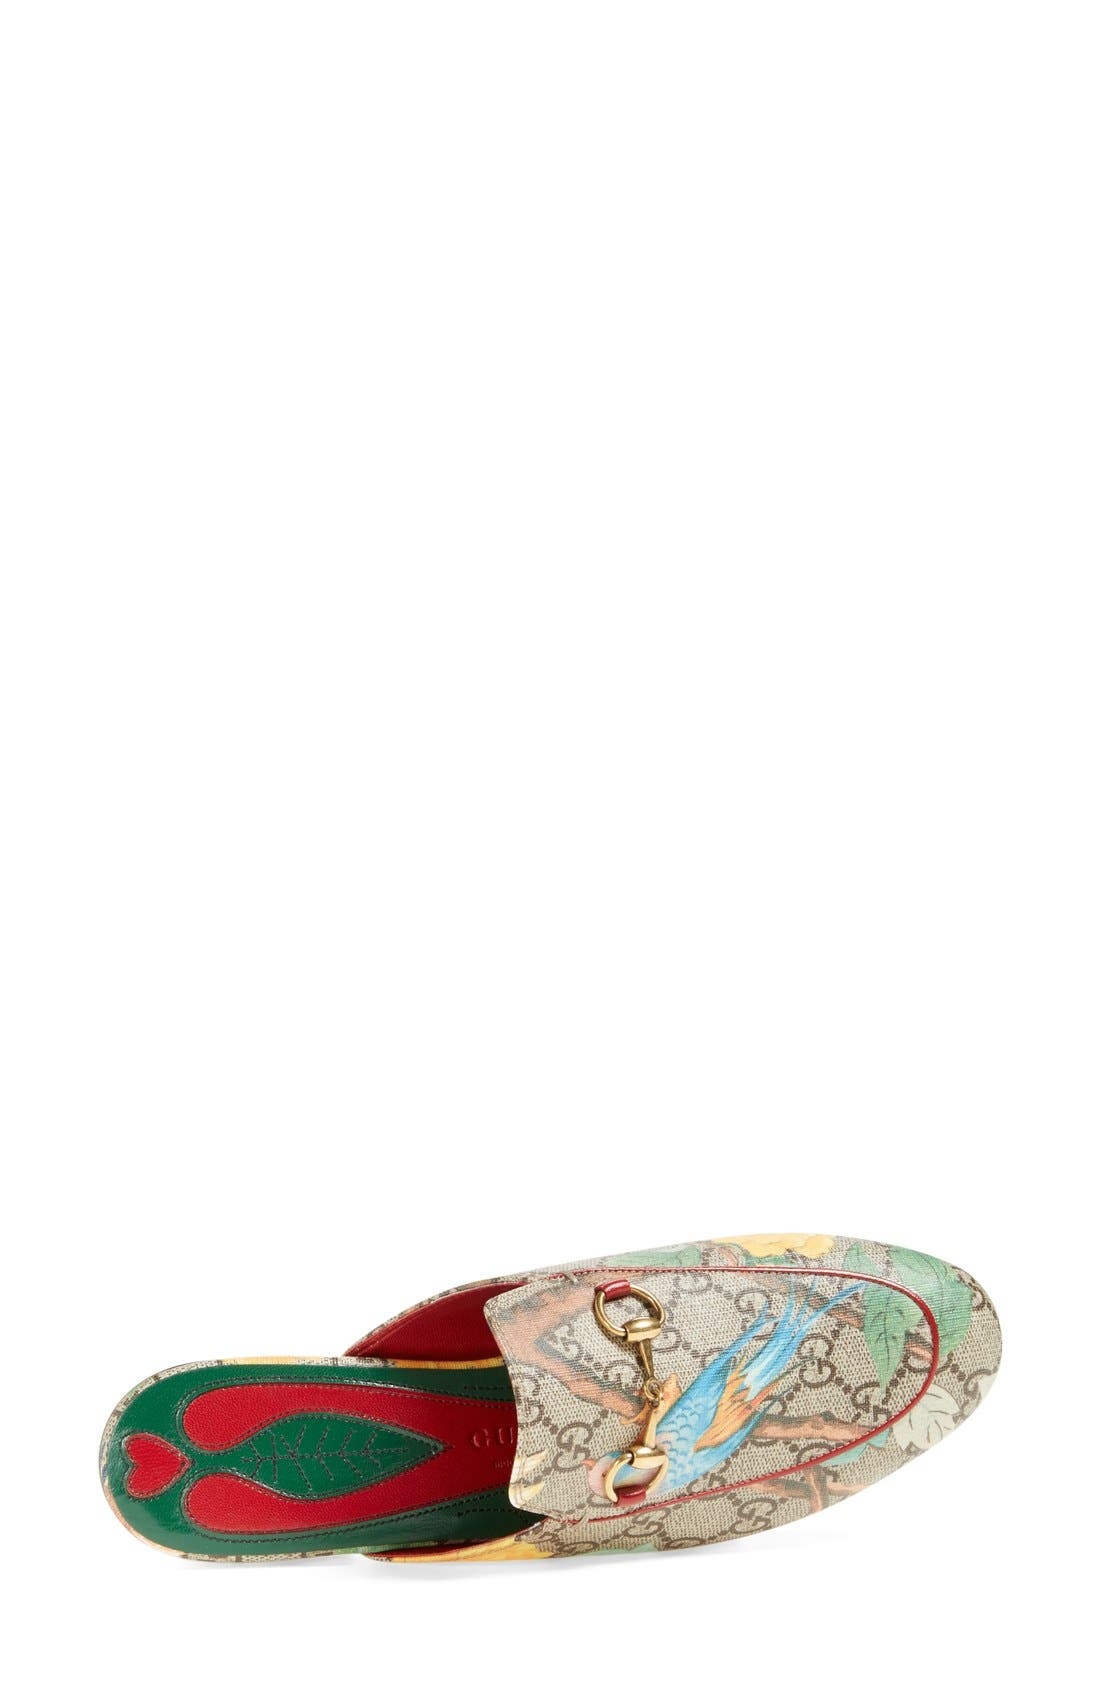 Alternate Image 3  - Gucci 'Princetown' Floral Print Mule Loafer (Women)